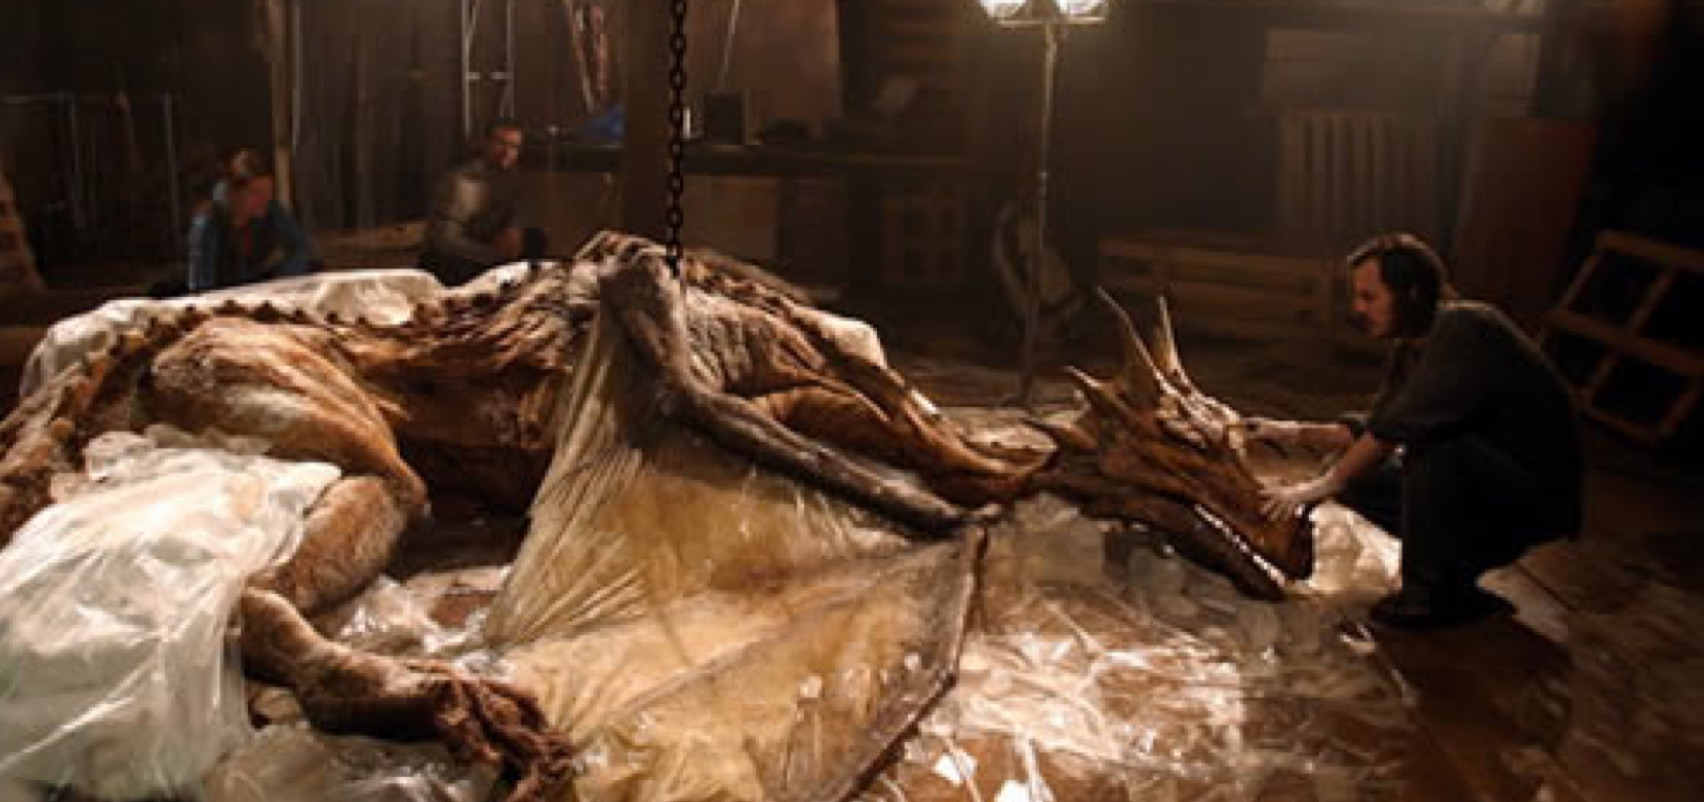 Fig. 1 - A frame of  The Last Dragon  showing Dr. Tanner analyzing the recently rediscovered skeleton of a female dragon.